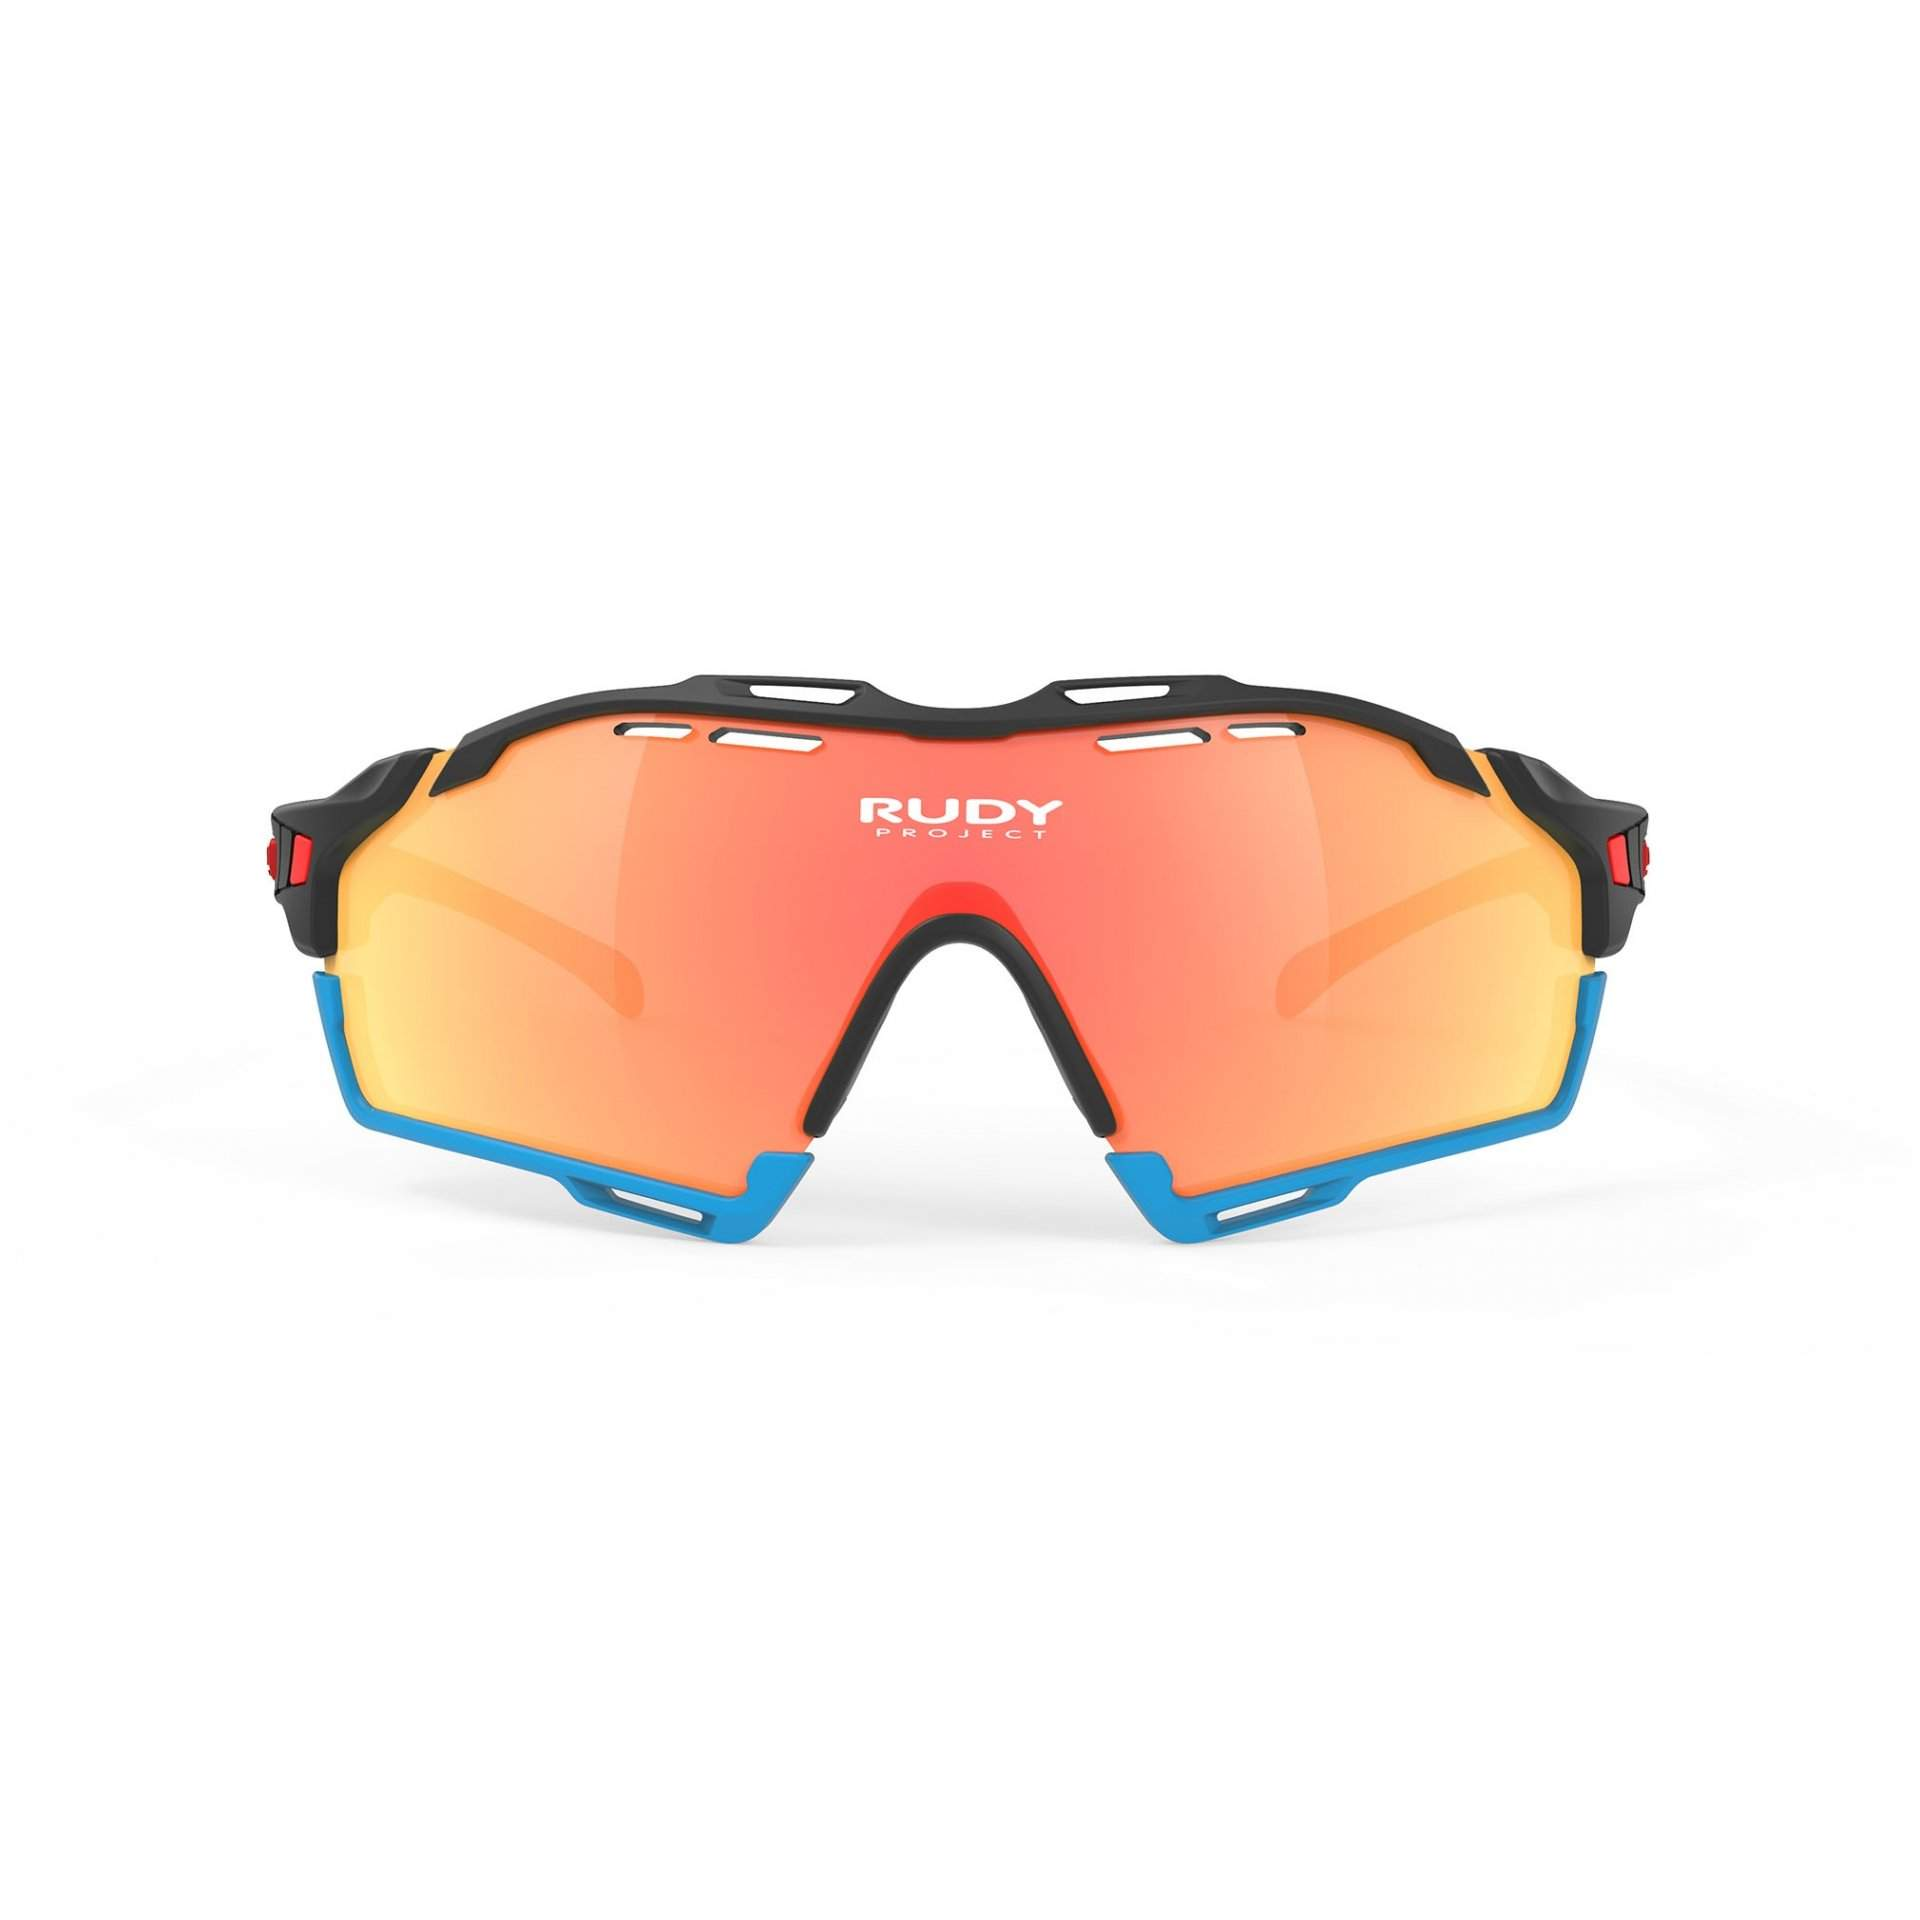 OKULARY RUDY PROJECT CUTLINE MULTILASER ORANGE RACING +BLACK MATTE|AZUR SP634006R000 PRZÓD